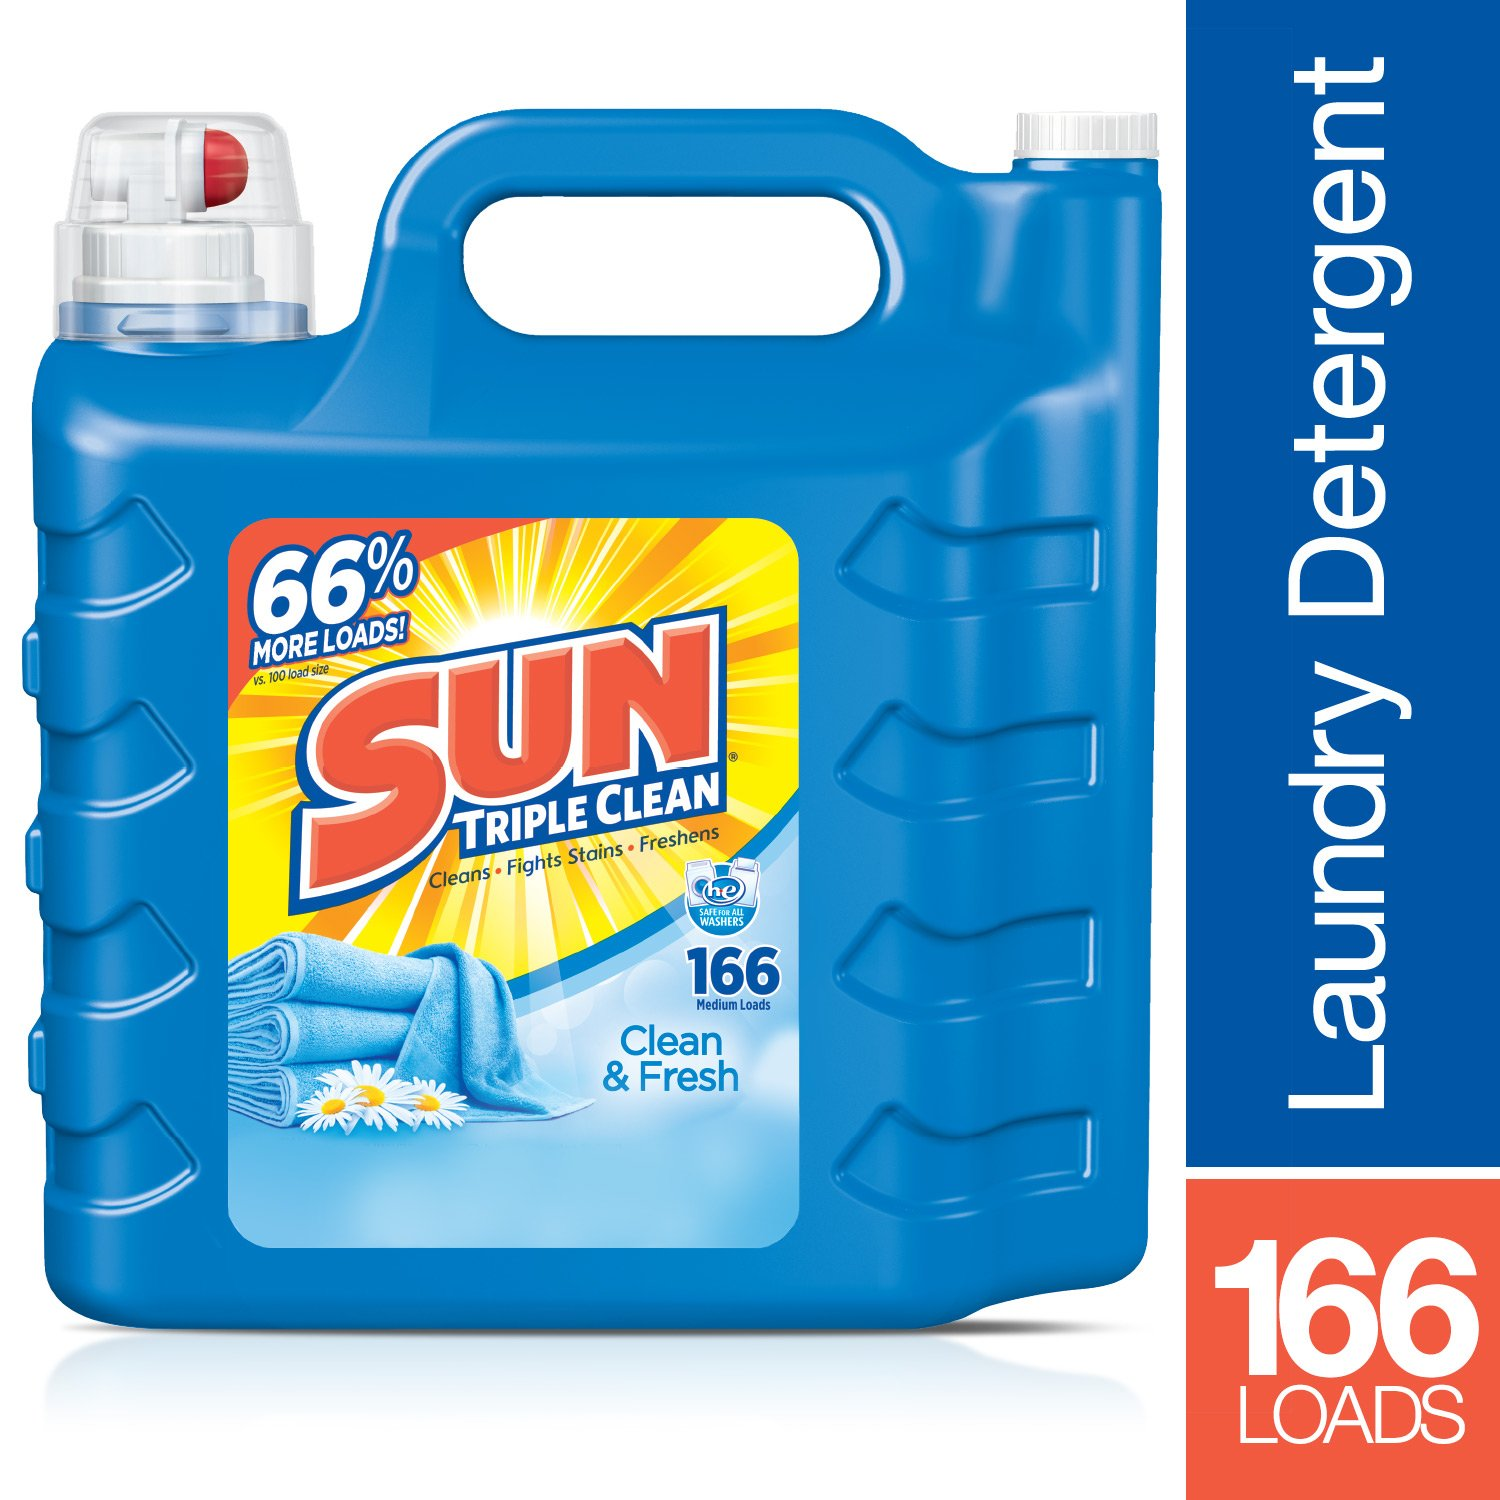 Amazon.com : Sun Ultra Liquid Laundry Detergent, Clean and Fresh, 250 Ounces, 166 Loads : Grocery & Gourmet Food